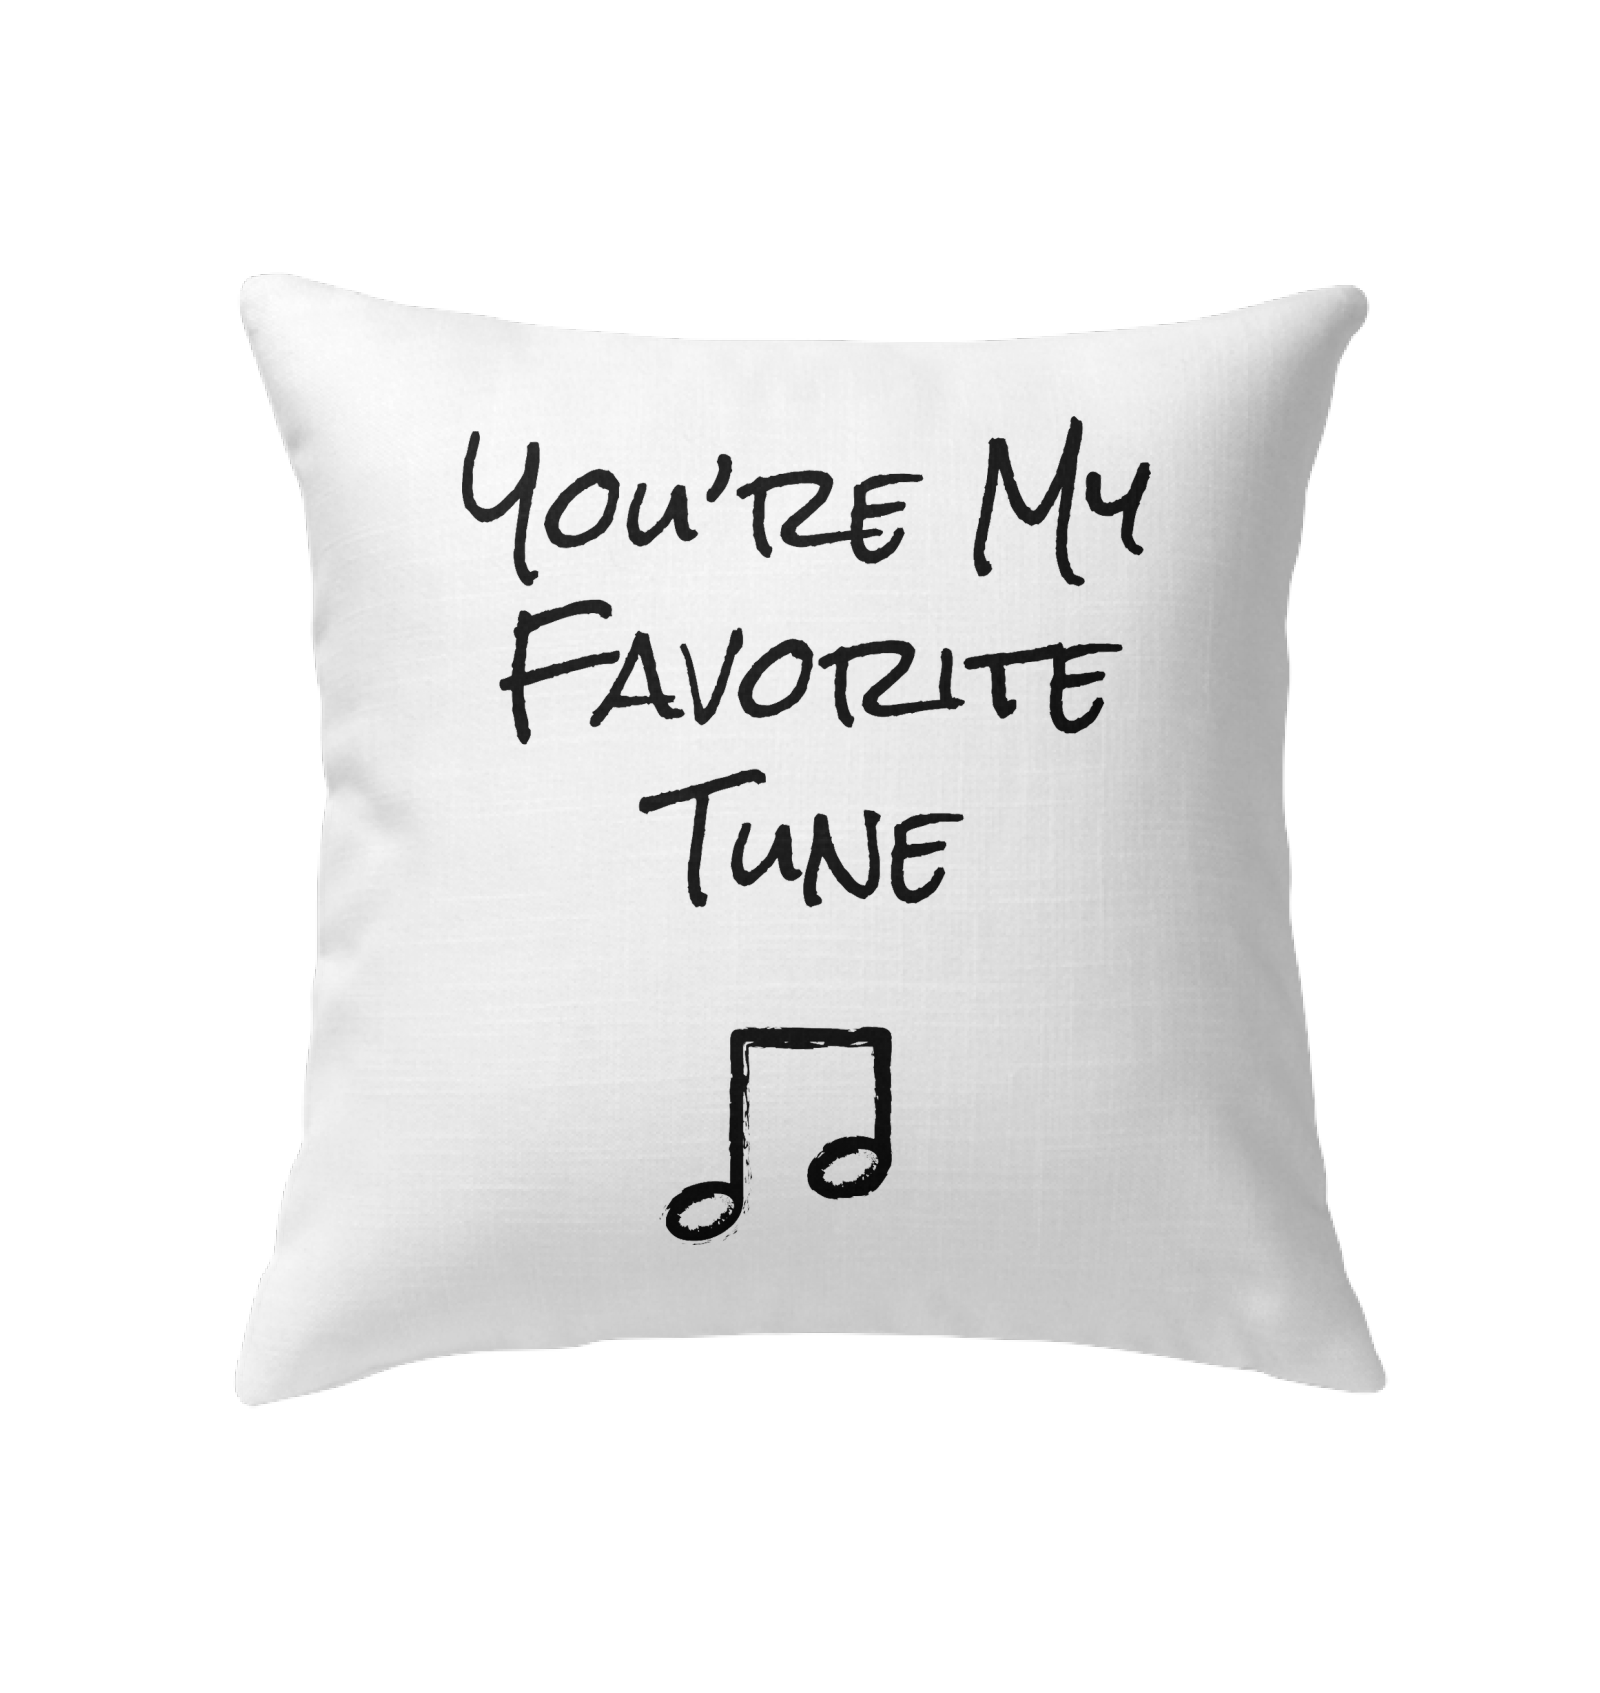 You're My Favorite Tune - Indoor Pillow